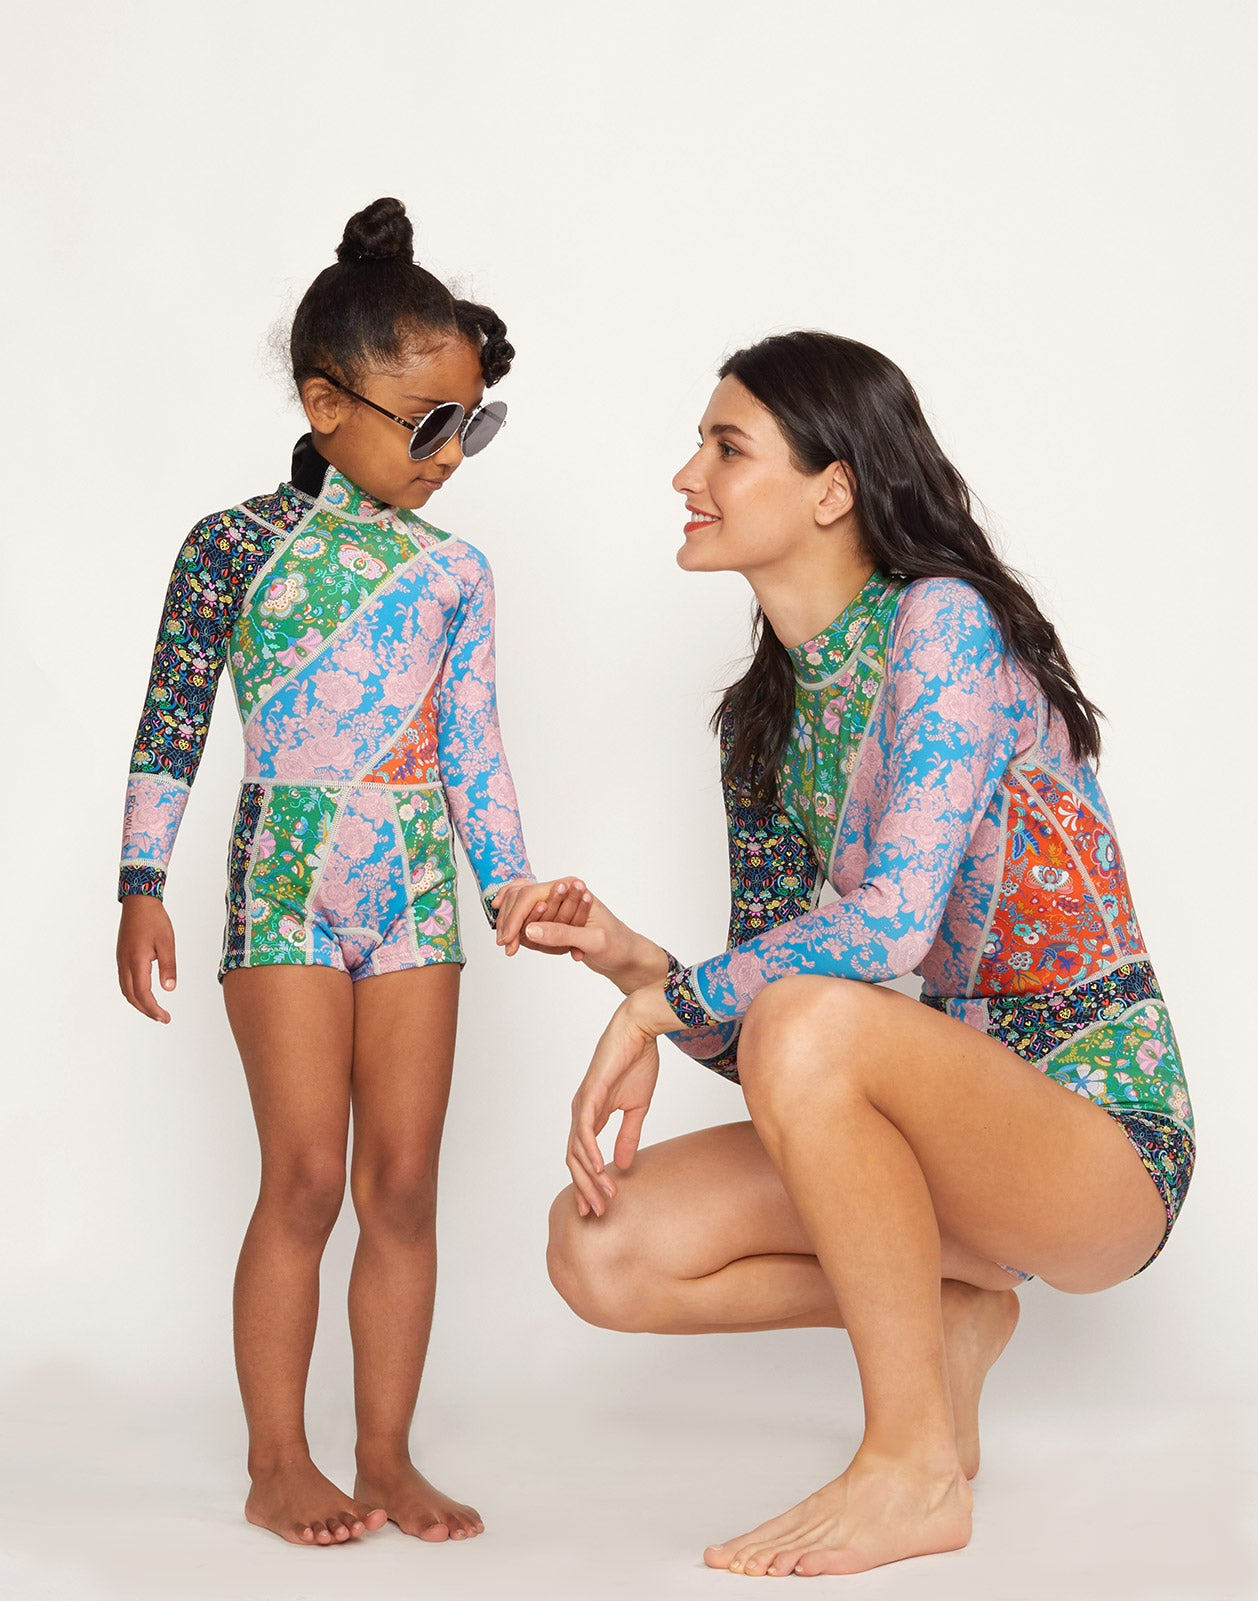 Full view of model wearing Girl's Floral Wetsuit with another model in Daybreak Floral Wetsuit.